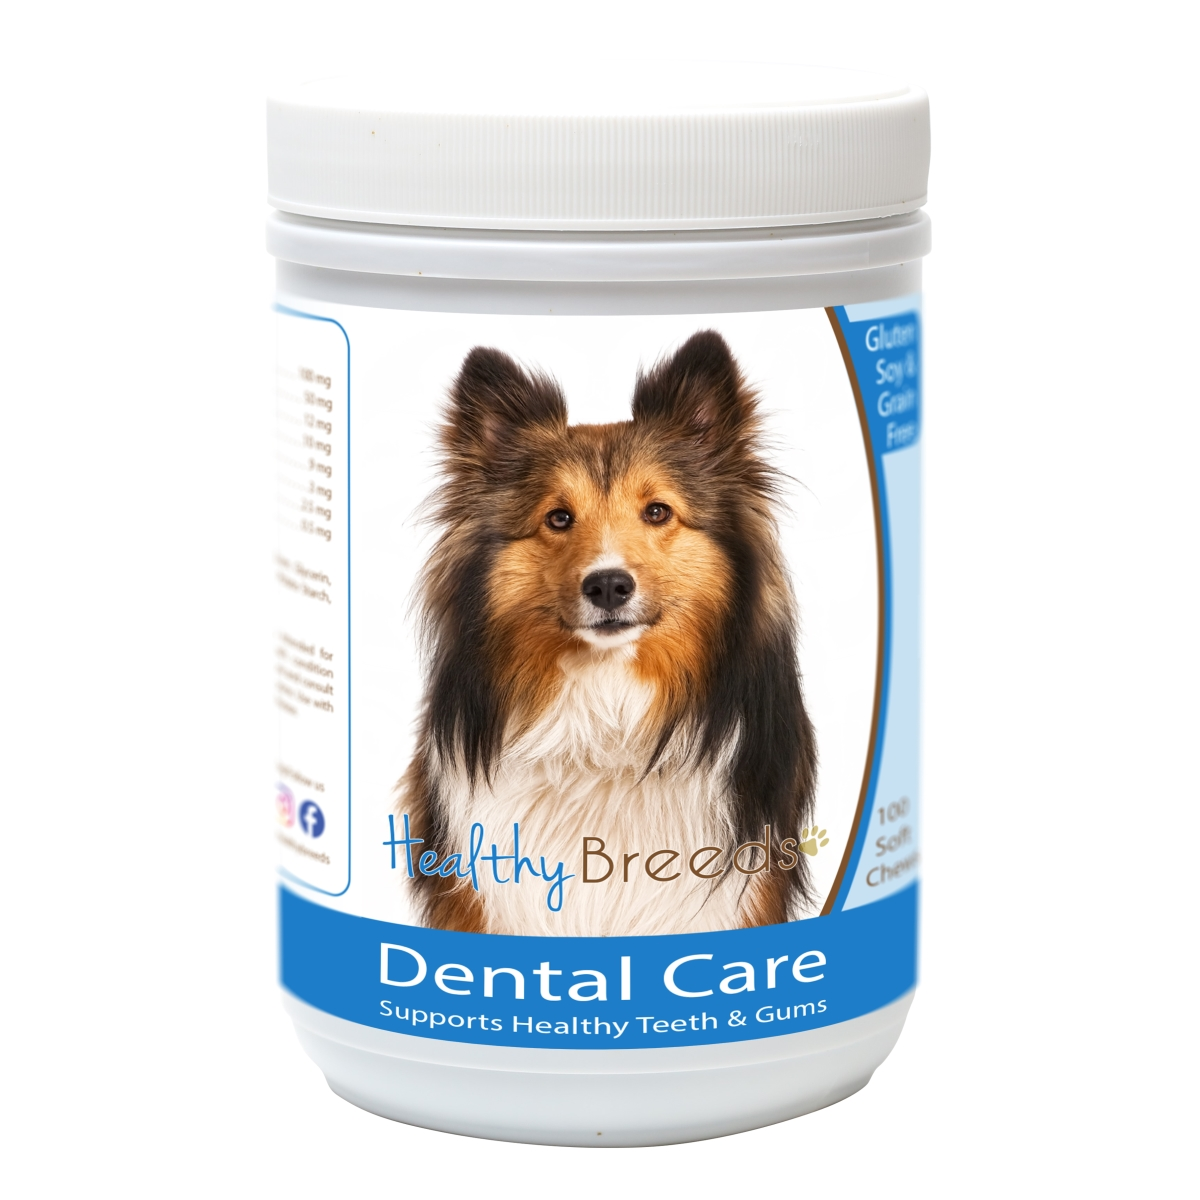 Healthy Breeds 840235163343 Shetland Sheepdog Breath Care Soft Chews for Dogs - 60 Count